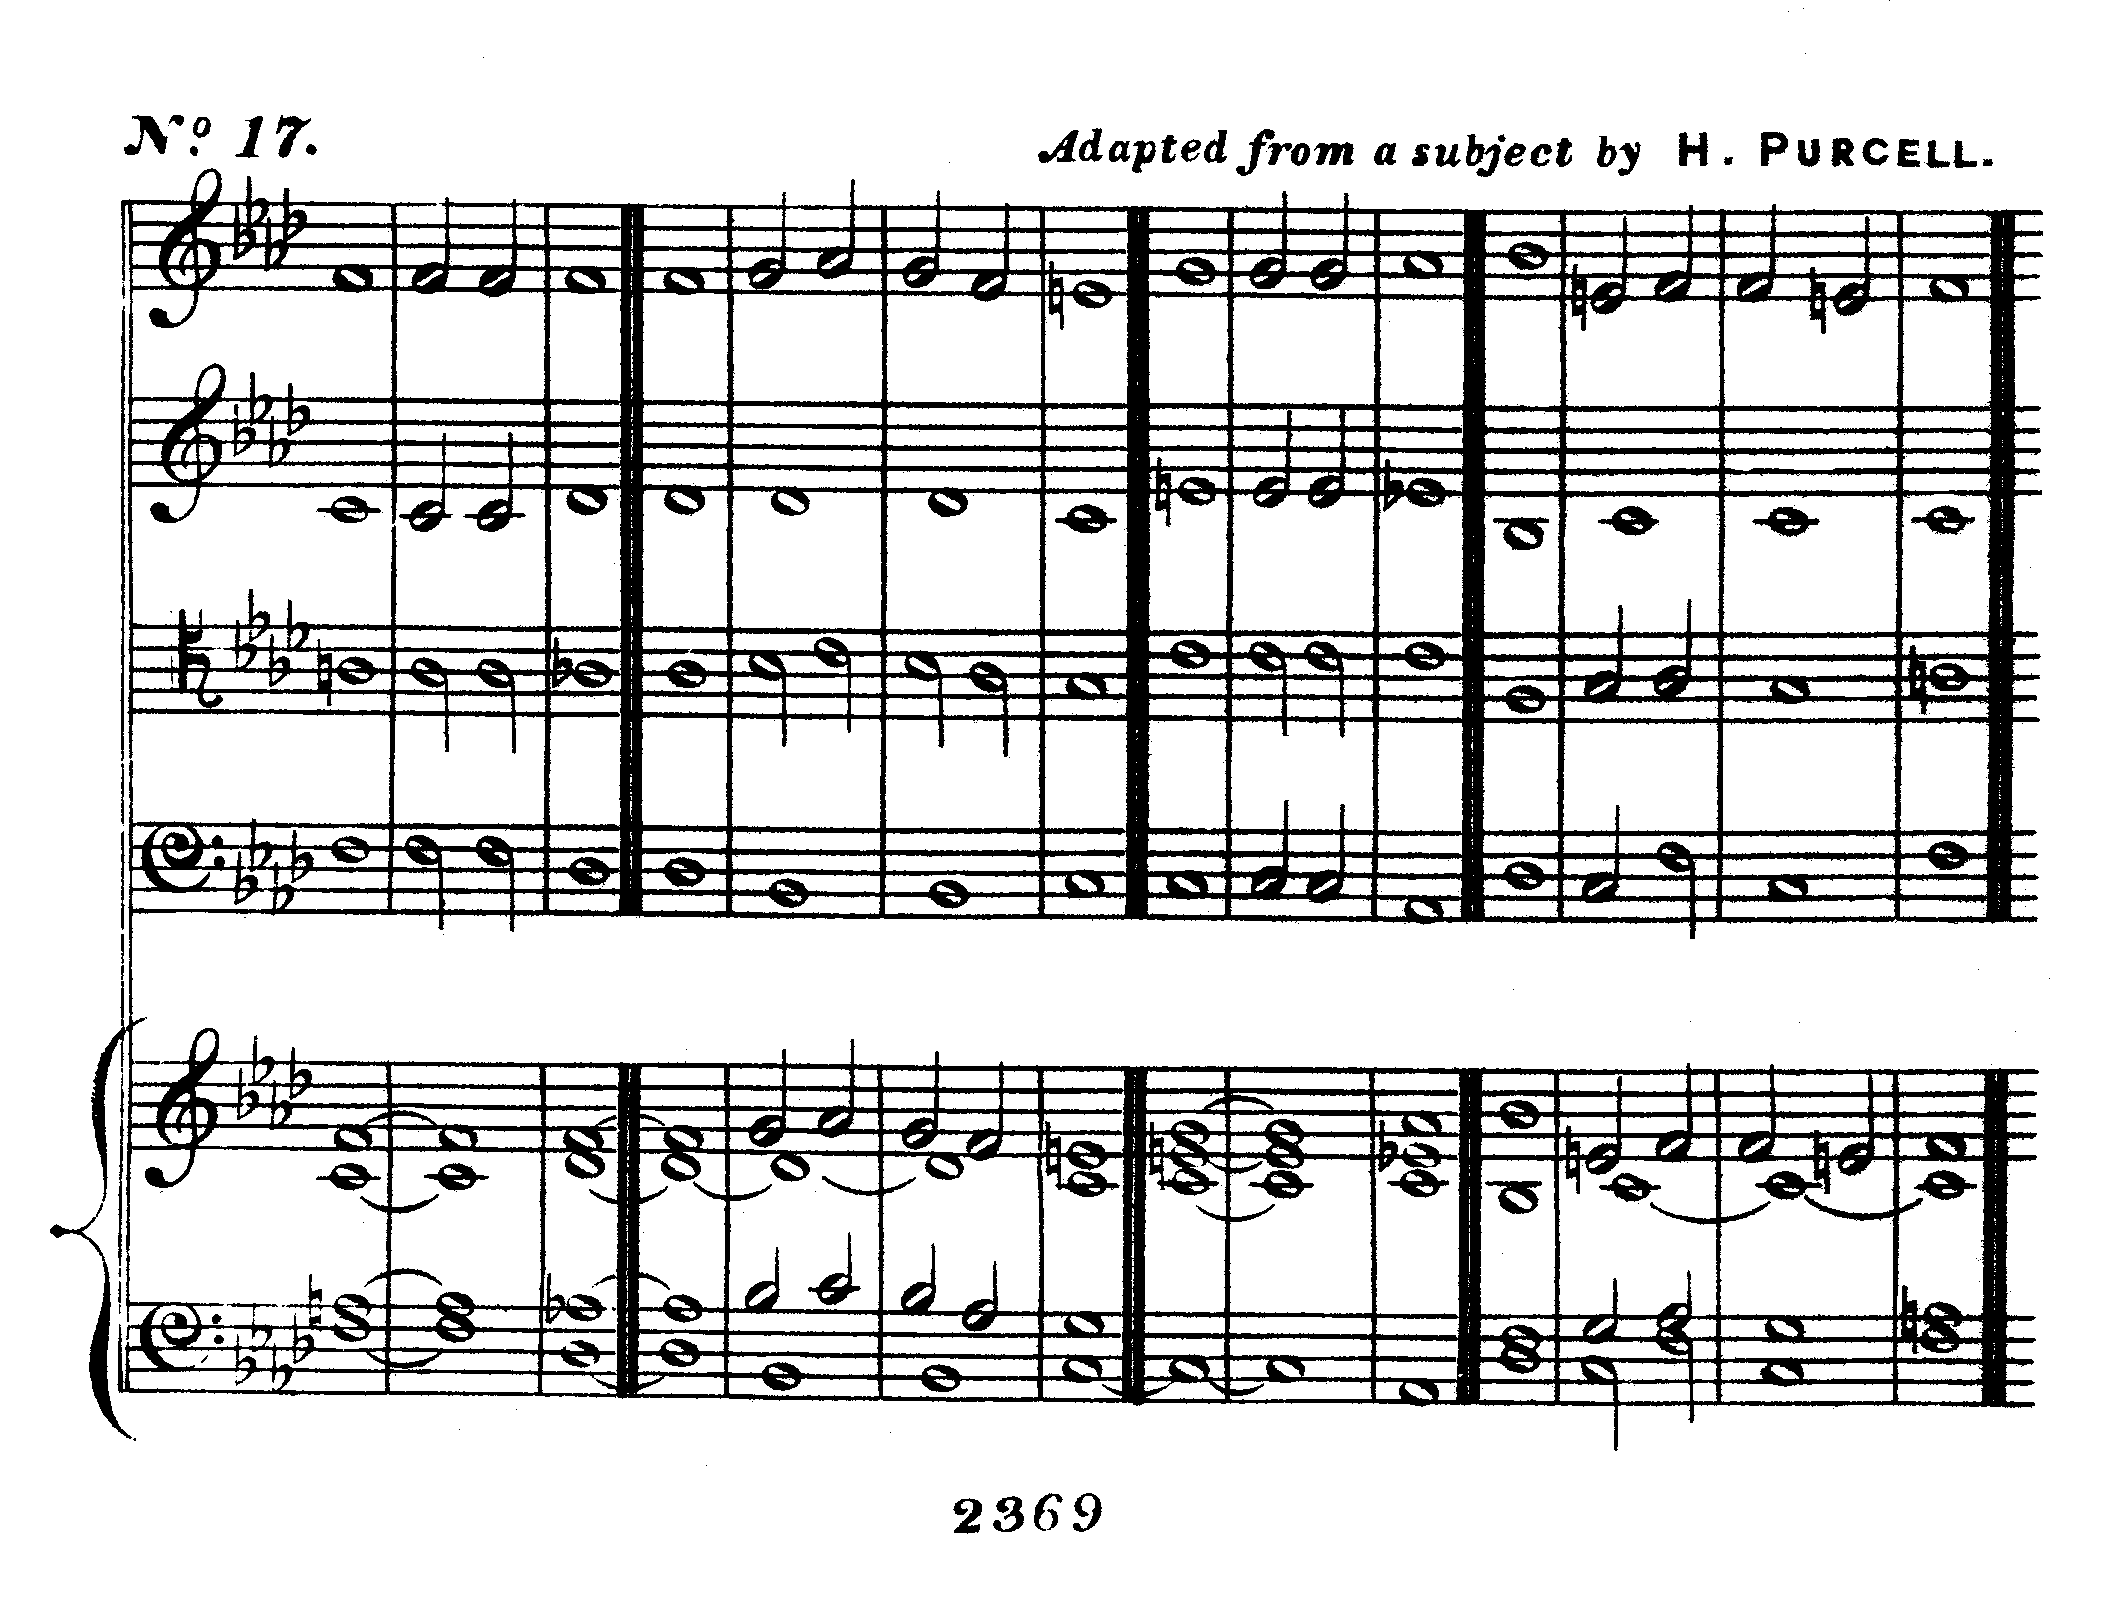 Double chant in F minor adapted from a subject by H Purcell set to Psalm 130